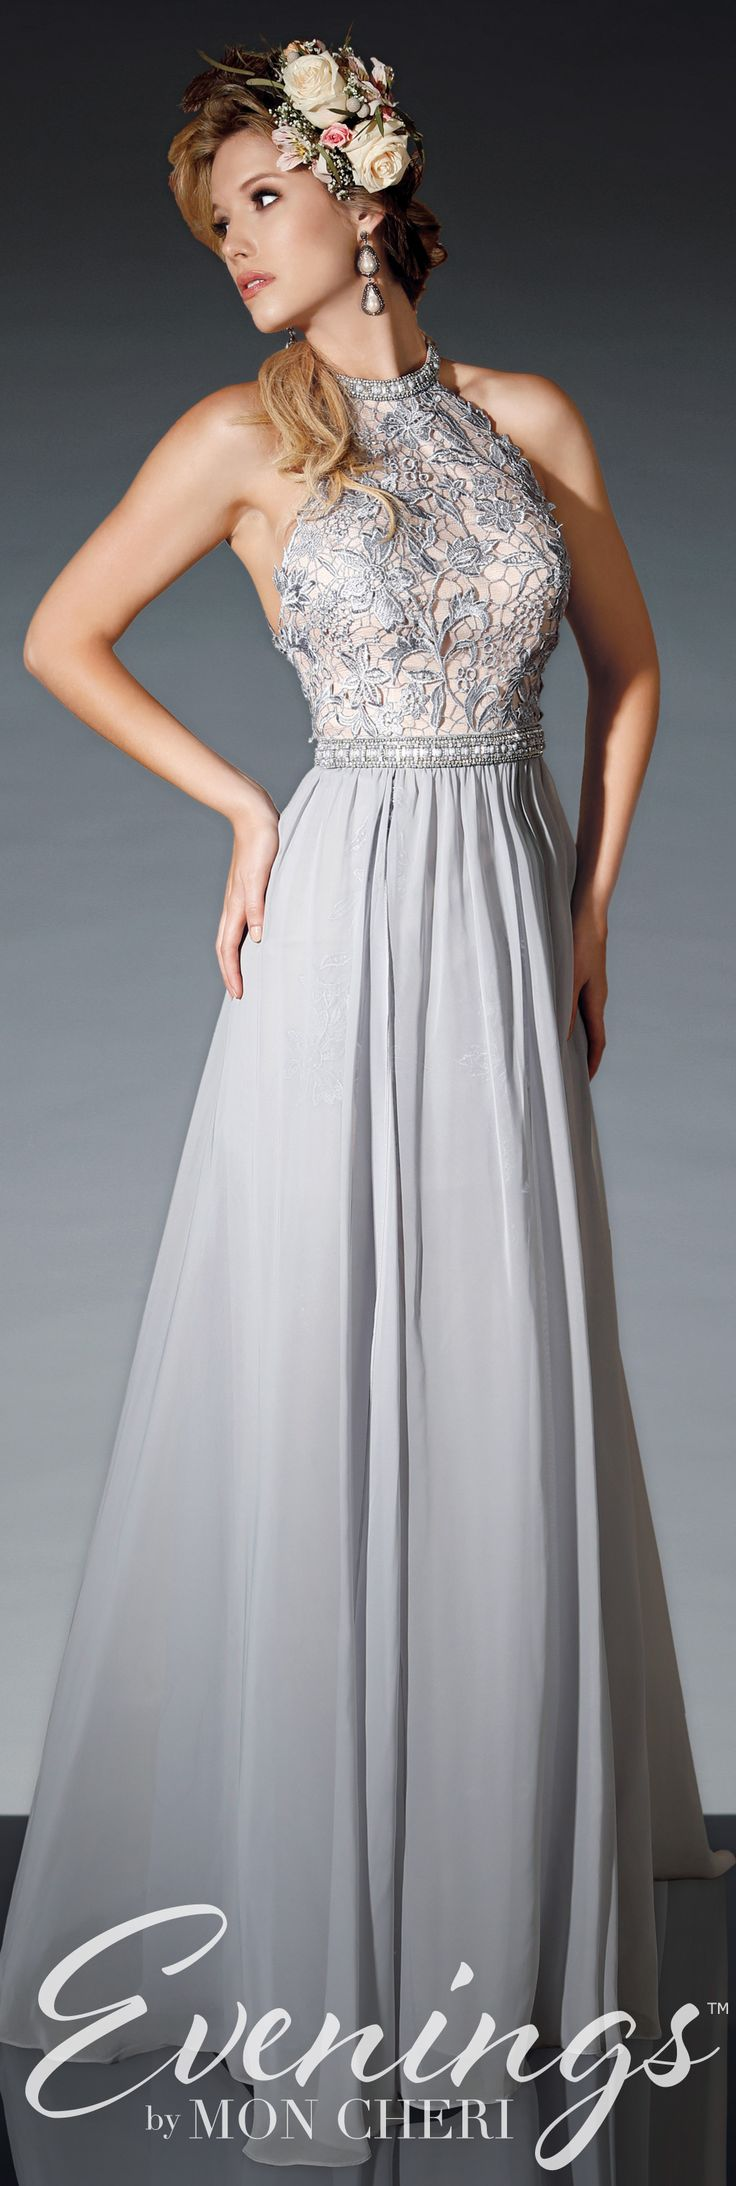 Gorgeous dress for wedding party   best dresses wedding images on Pinterest  Evening gowns Wedding